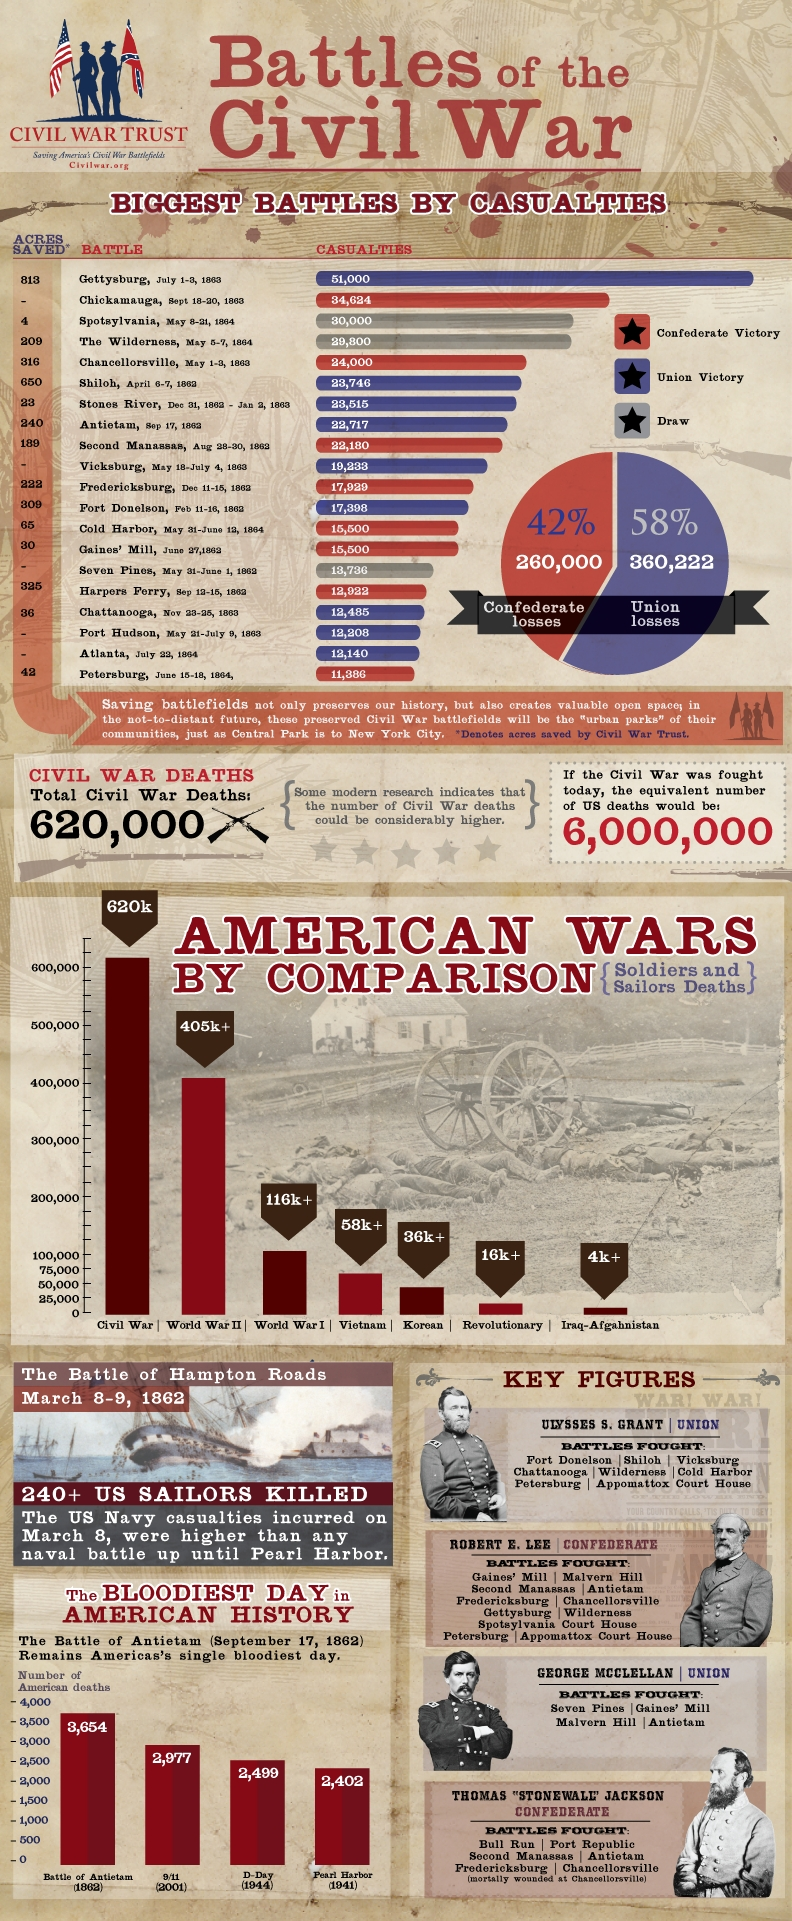 american civil war battles history iers facts flags maps american civil war history homepage jpg